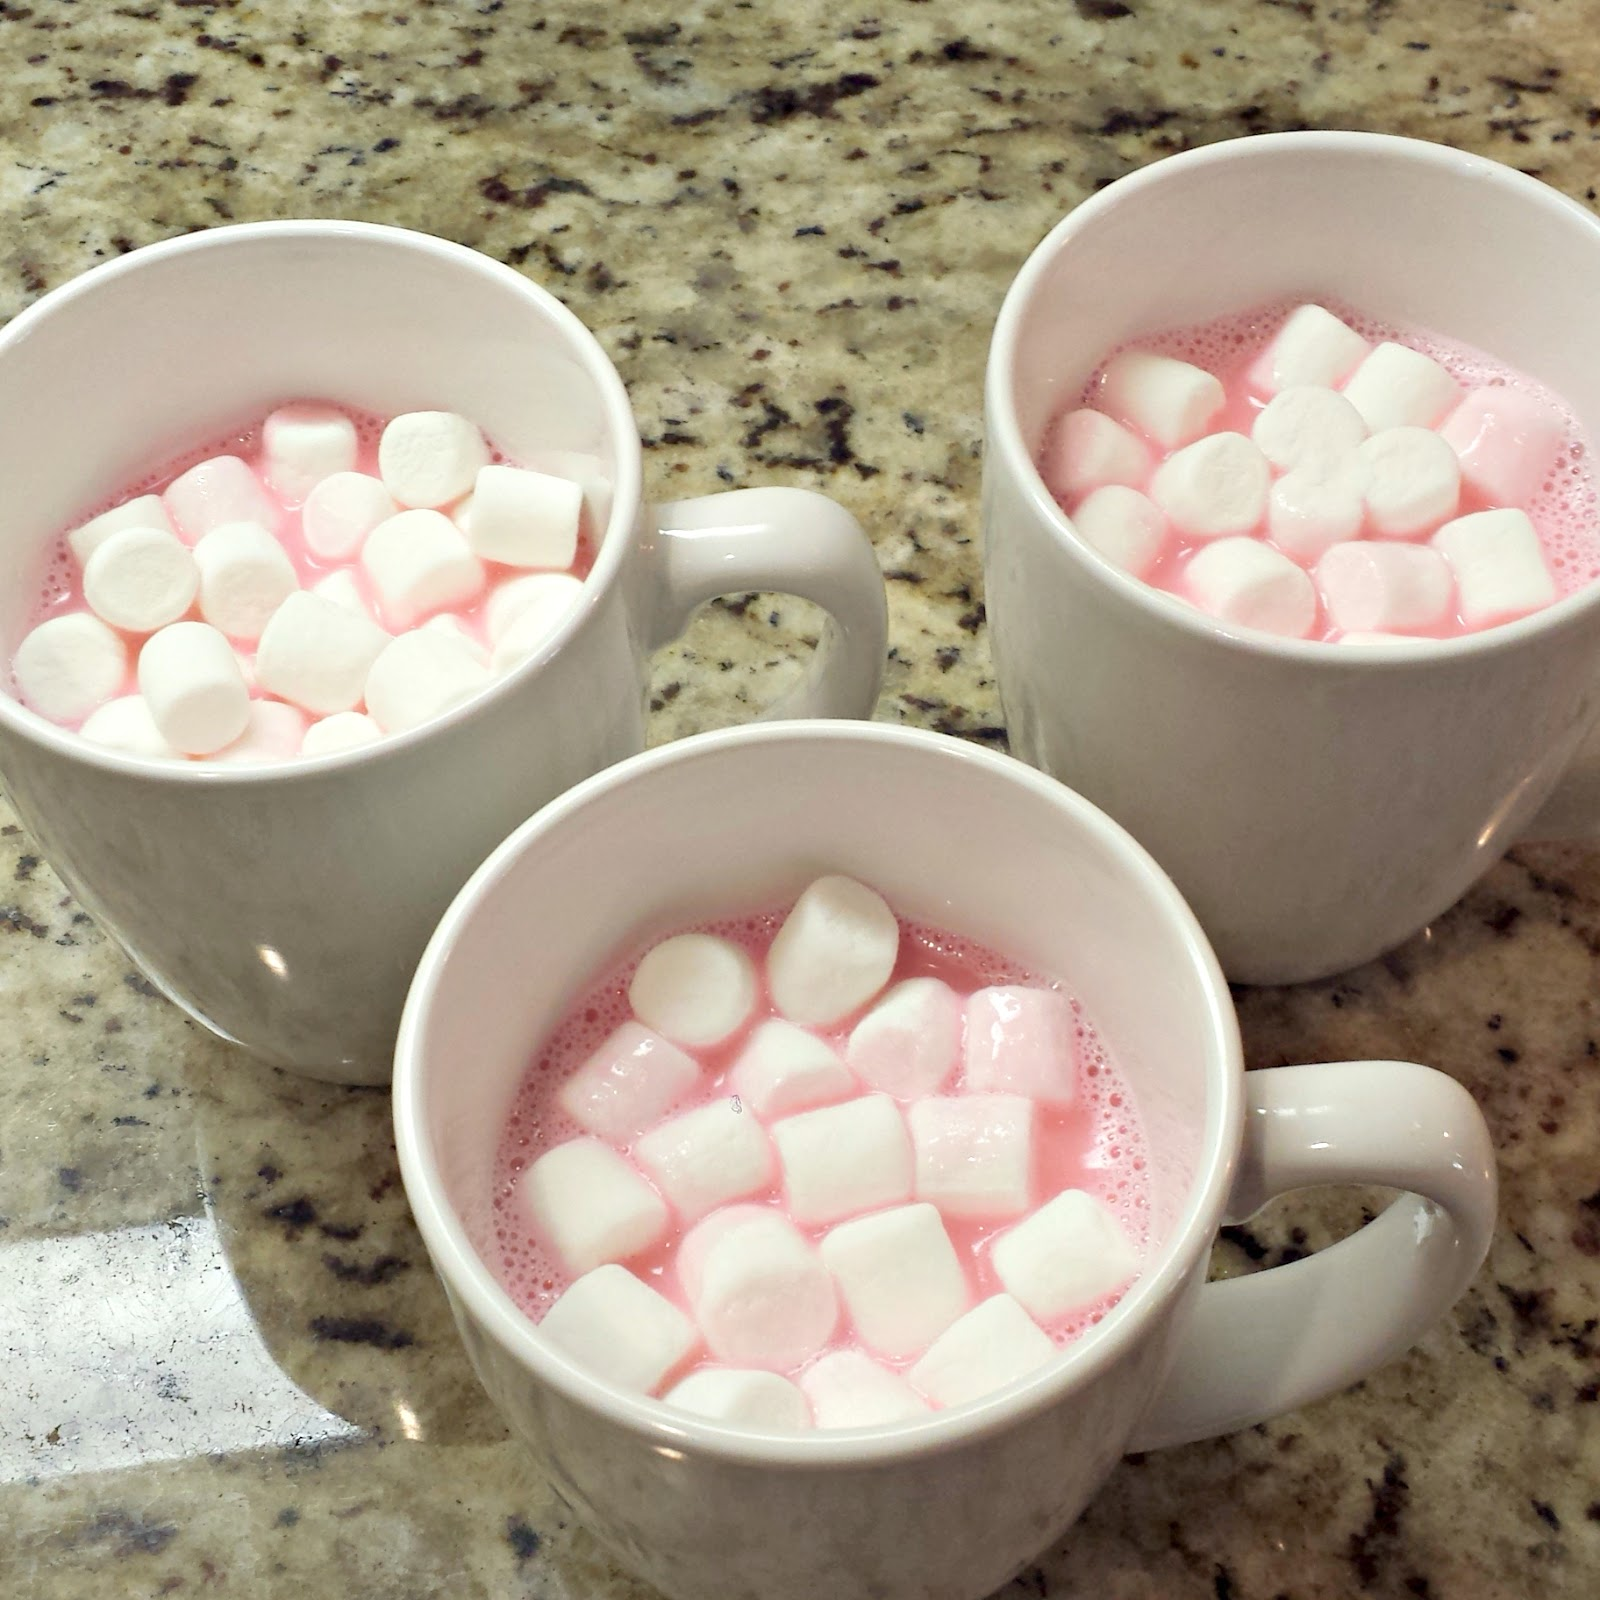 Discussion on this topic: How to Make Pink Hot Chocolate, how-to-make-pink-hot-chocolate/